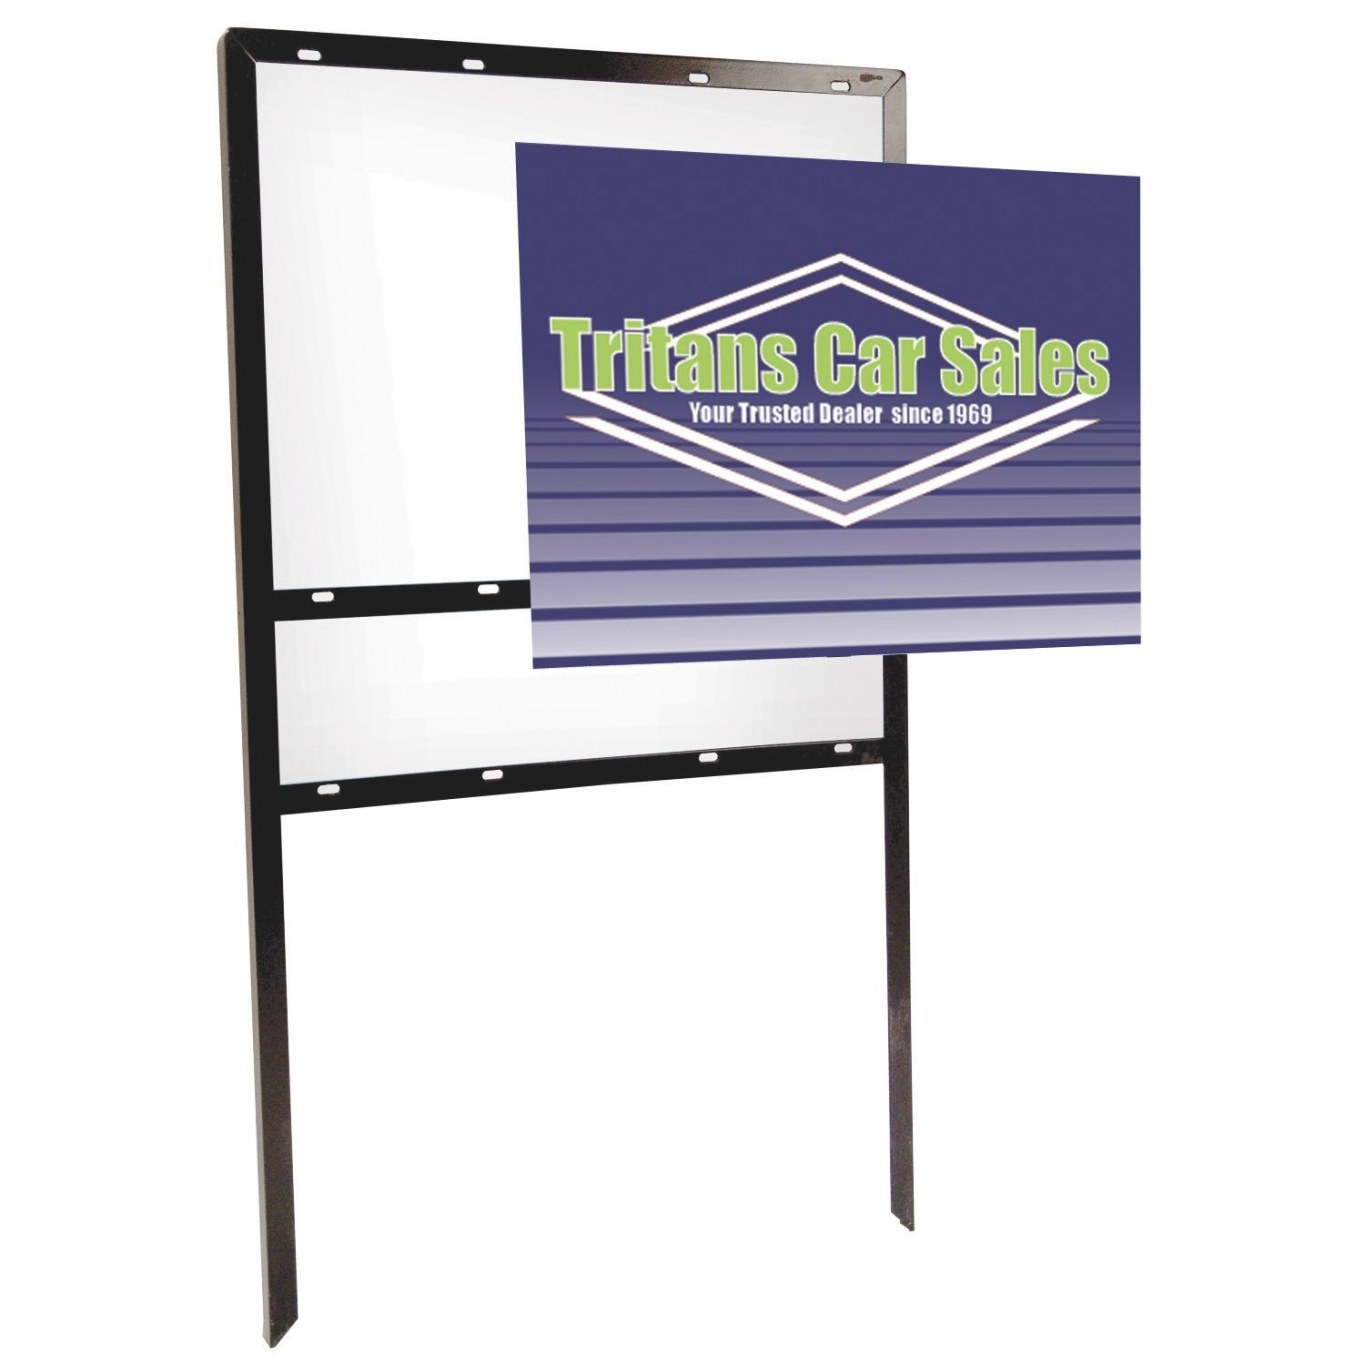 18″ X 24″ Angle Iron Frame Double-Sided Replacement with regard to 18 X 24 Frame